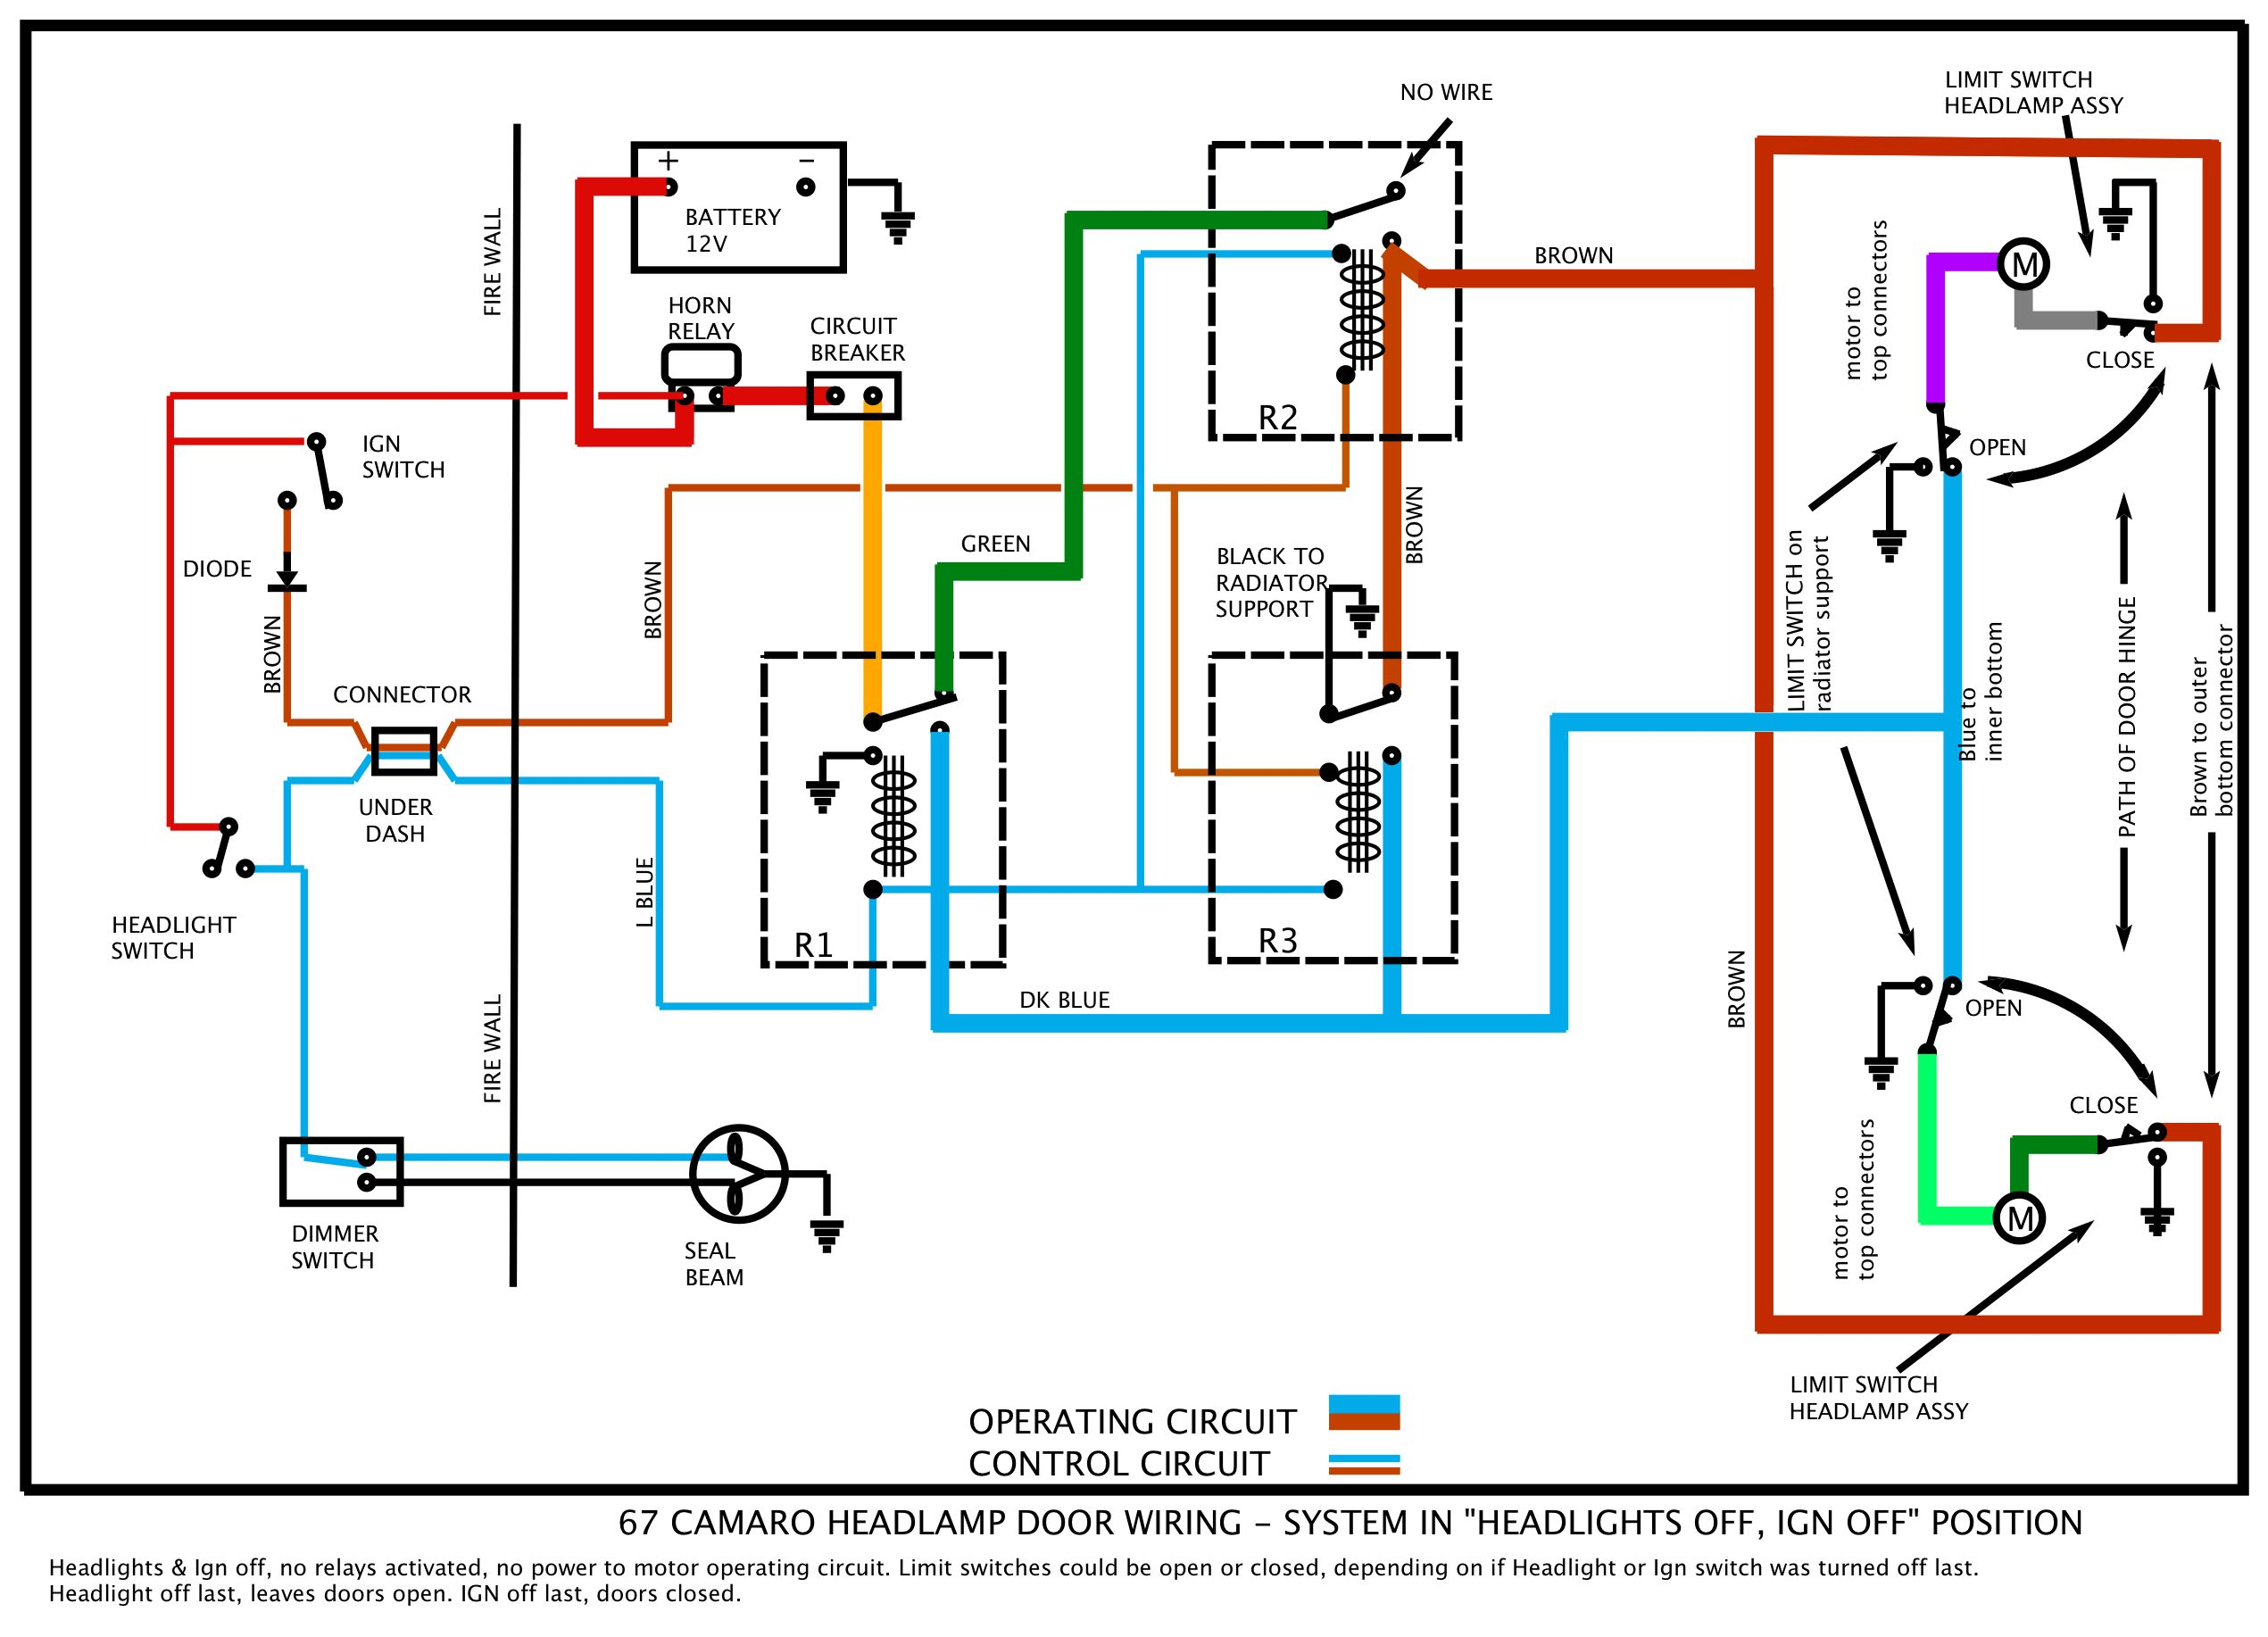 68 camaro wiring schematic online wiring diagram1968 camaro rs wiring diagram online wiring diagram1968 camaro rs wiring diagram free wiring diagram for